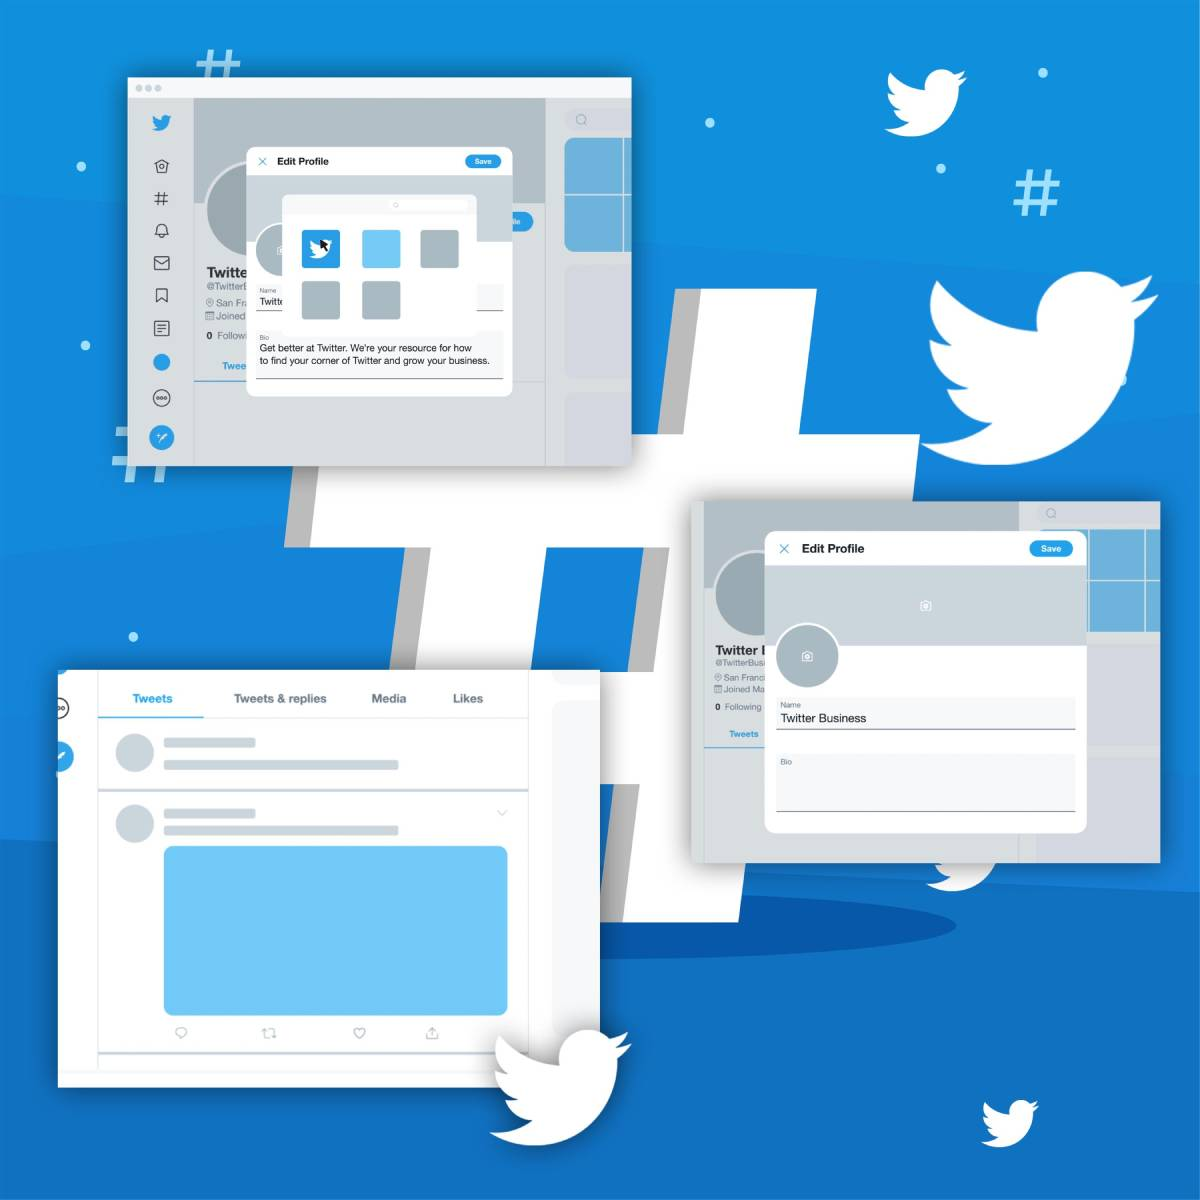 Want business from twitter?